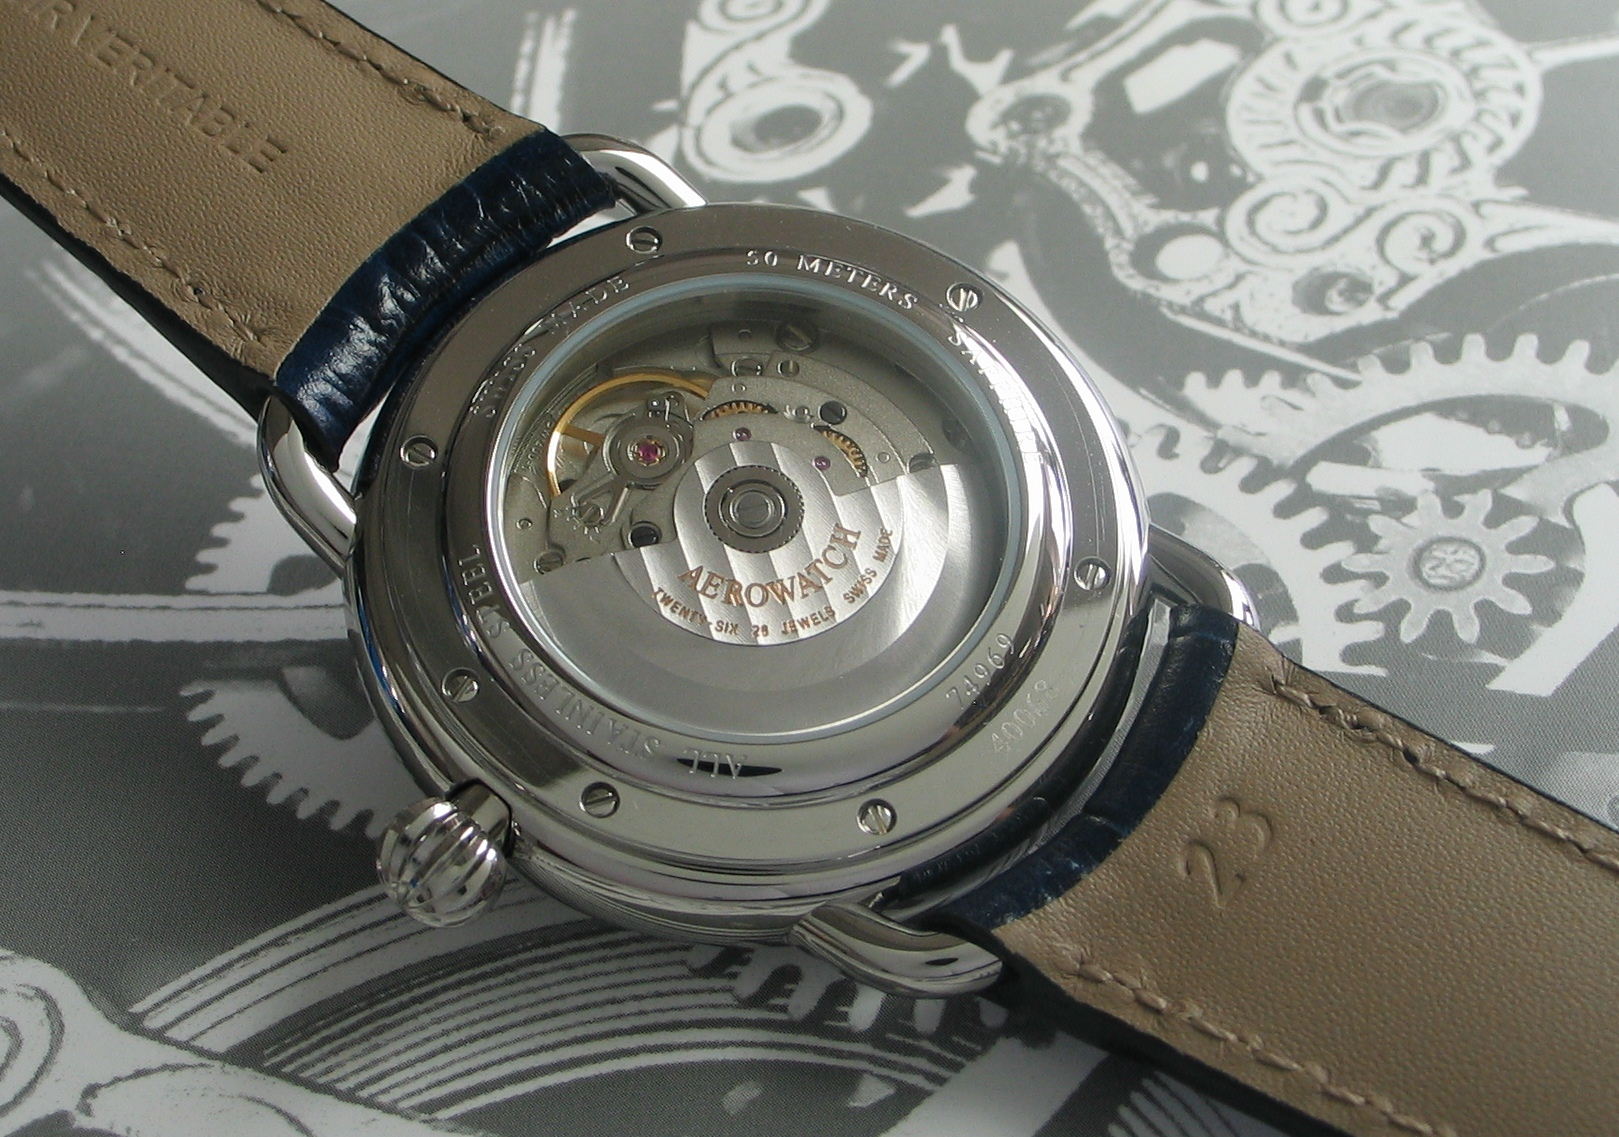 Caseback of the Aerowatch Moon Phase